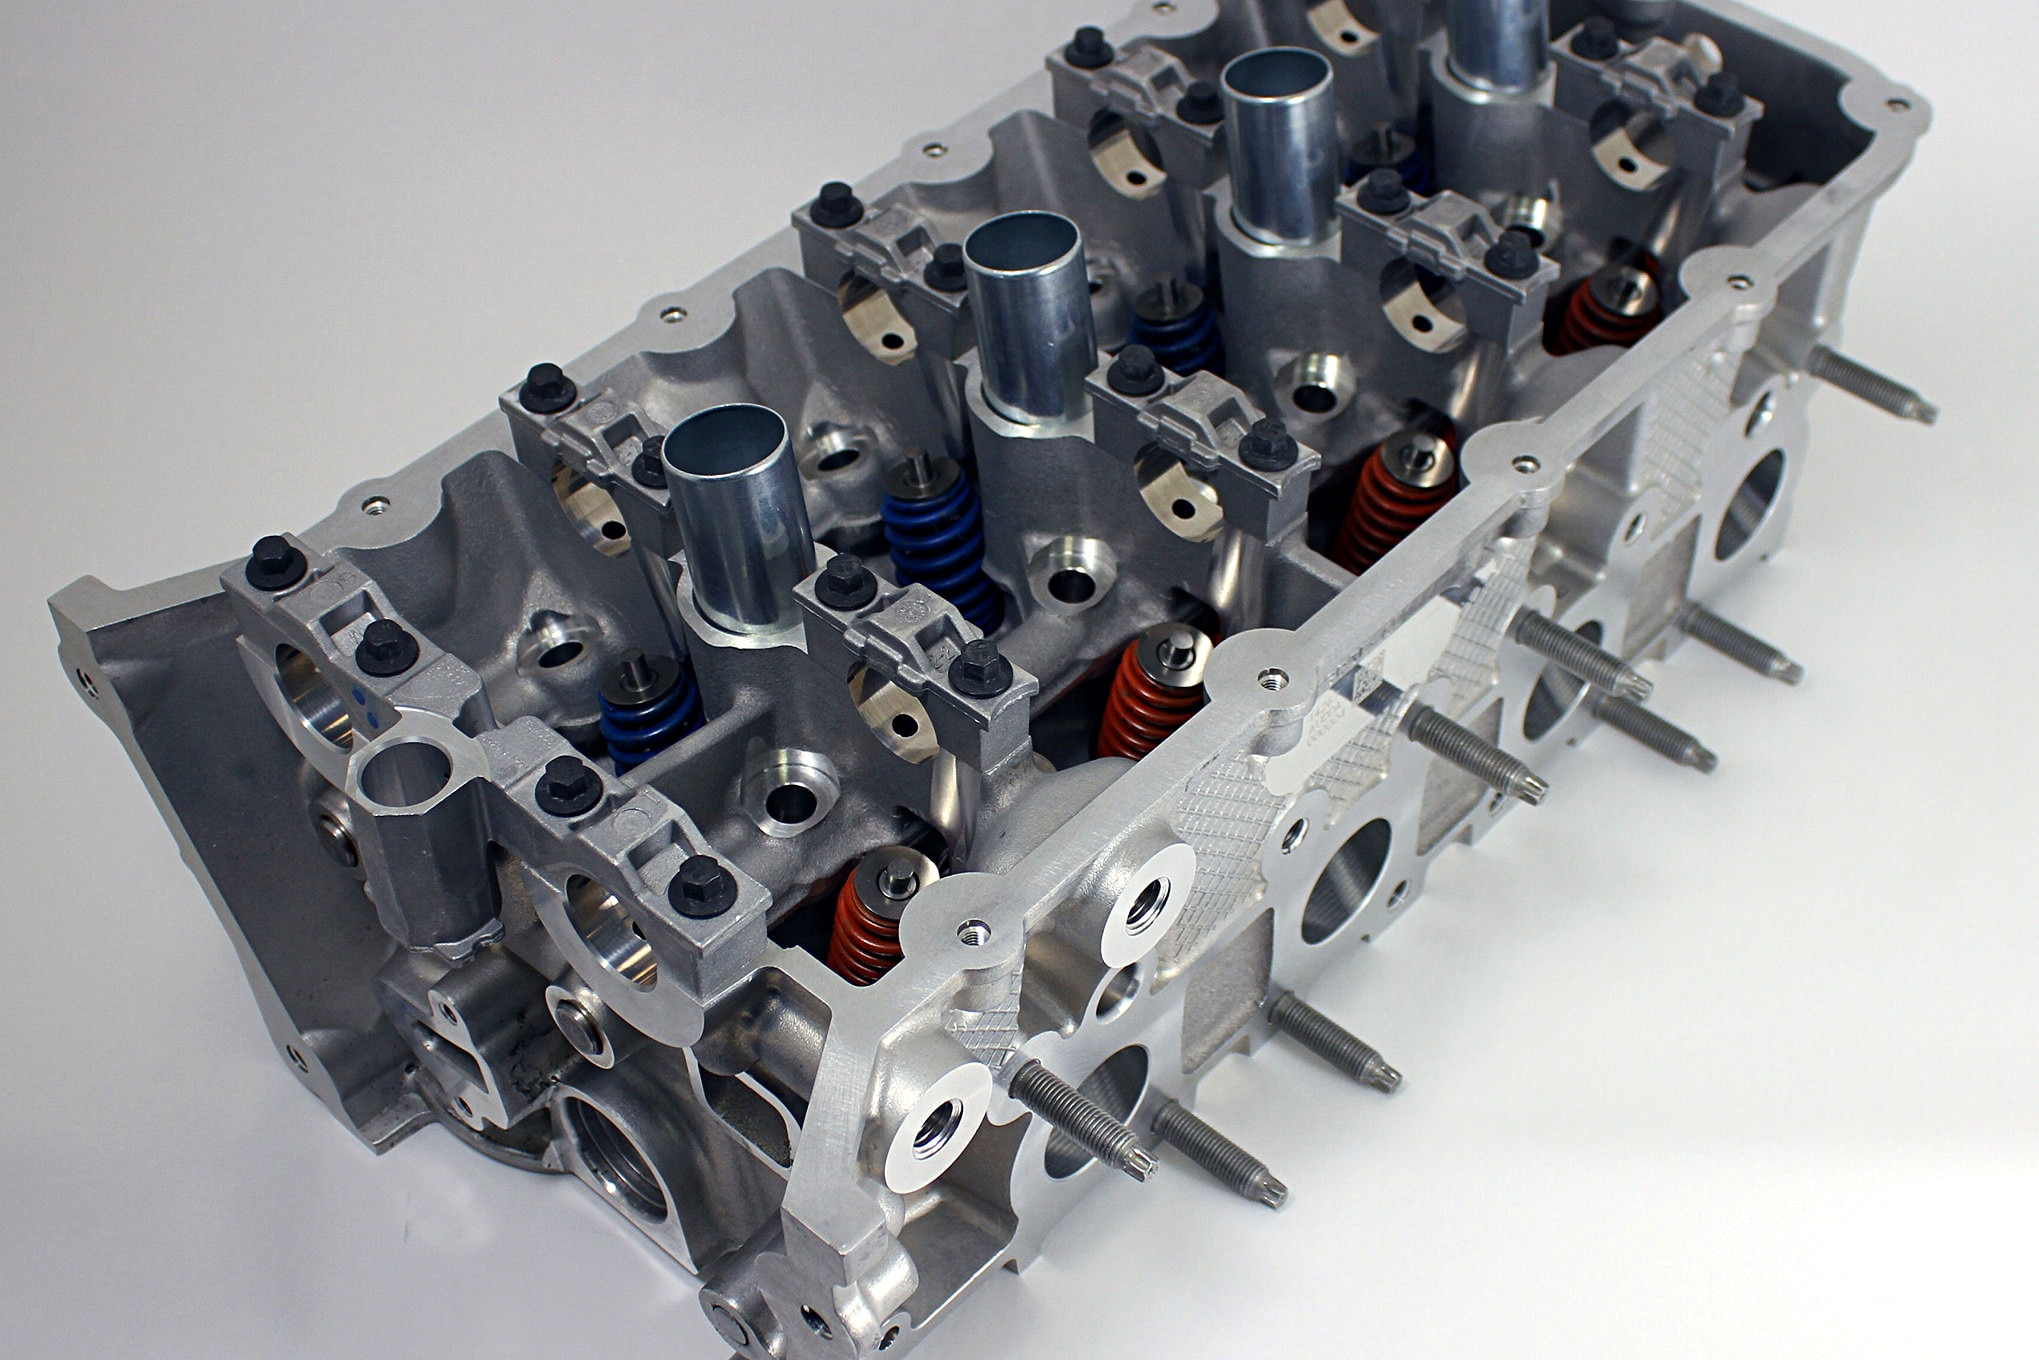 The 5.0L Coyote is the latest evolution of the Ford modular engine. With four valves per cylinder, dual overhead cams, cam-torque-actuated (CTA) Twin Independent Variable Cam Timing (we just barely know what some of that means) and more, this Coyote GT-350 head is quite complex relative to the GM flathead. Things have changed, and this head allows the Coyote to make quite a bit of power (more than 400 hp and about 400 lb-ft of torque) with a relatively small displacement while still burning 87-octane fuel.